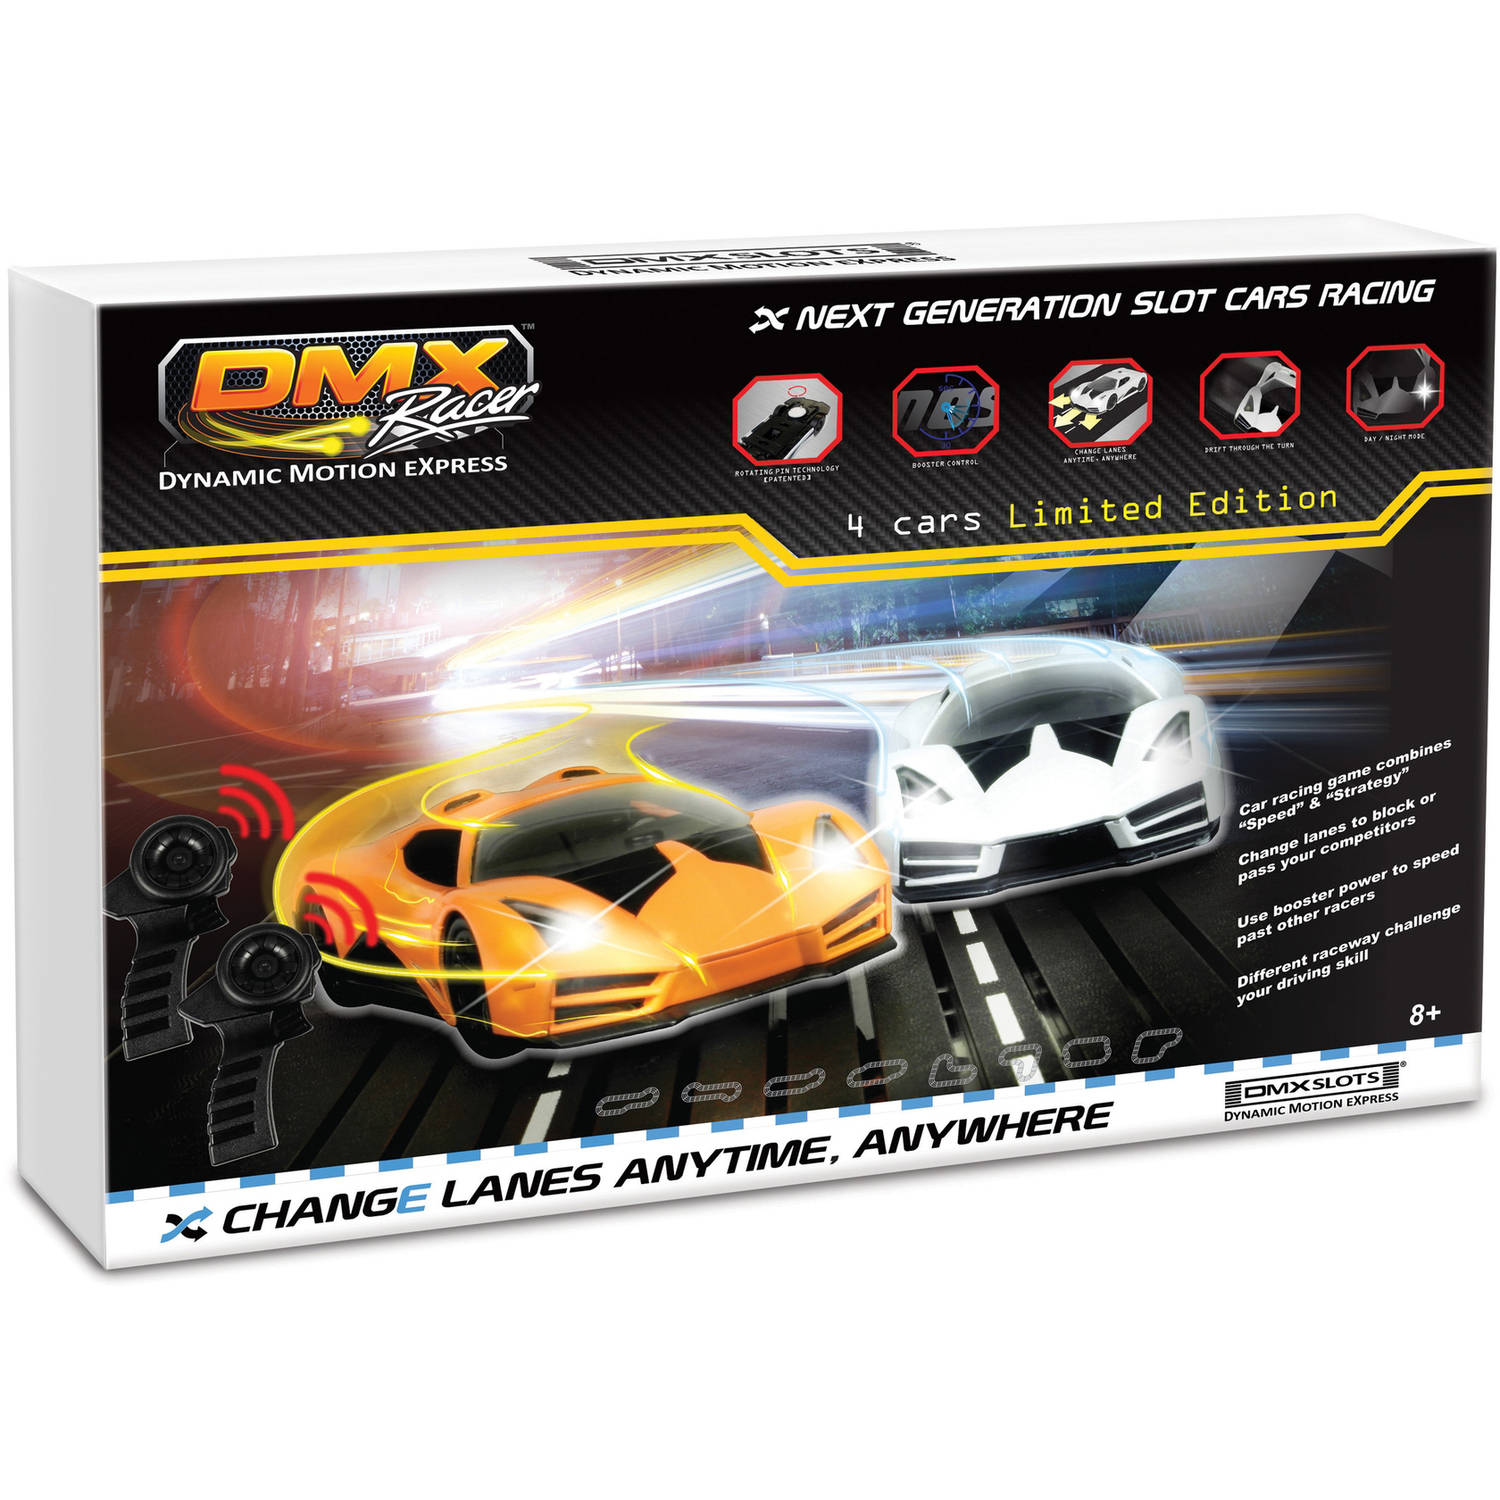 DMX Exclusive Revolutionary Pro Slot Car Racing Package